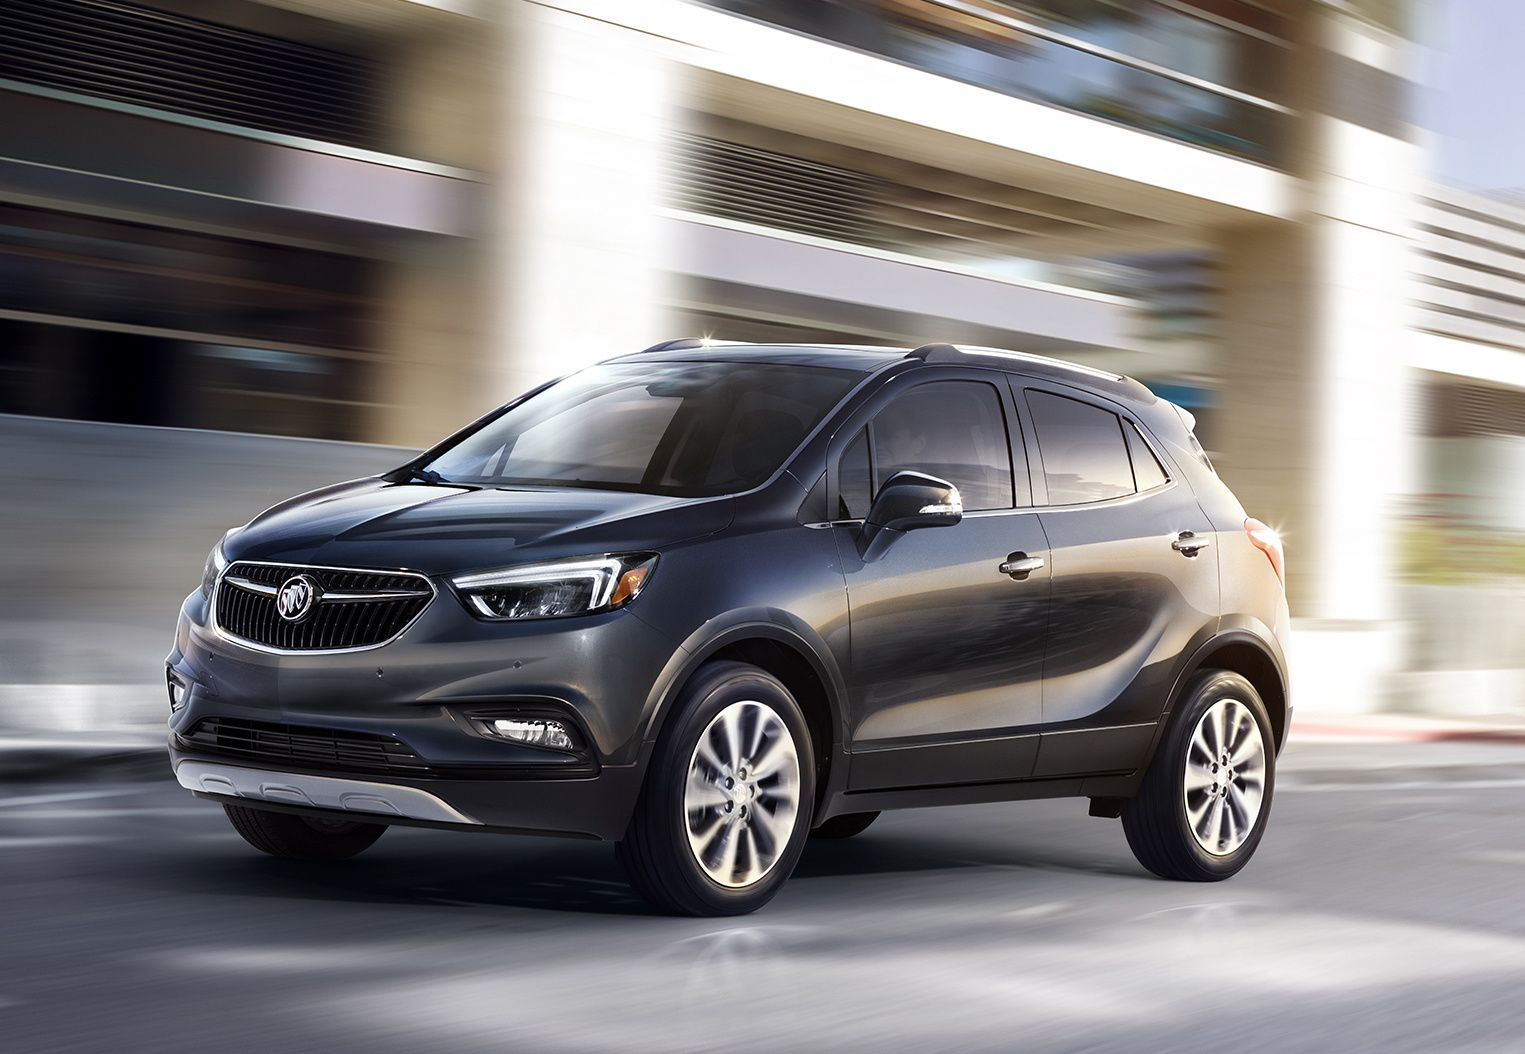 2016 2017 Buick Encore For Sale In Your Area Cargurus Opel Mokka Und Mokka